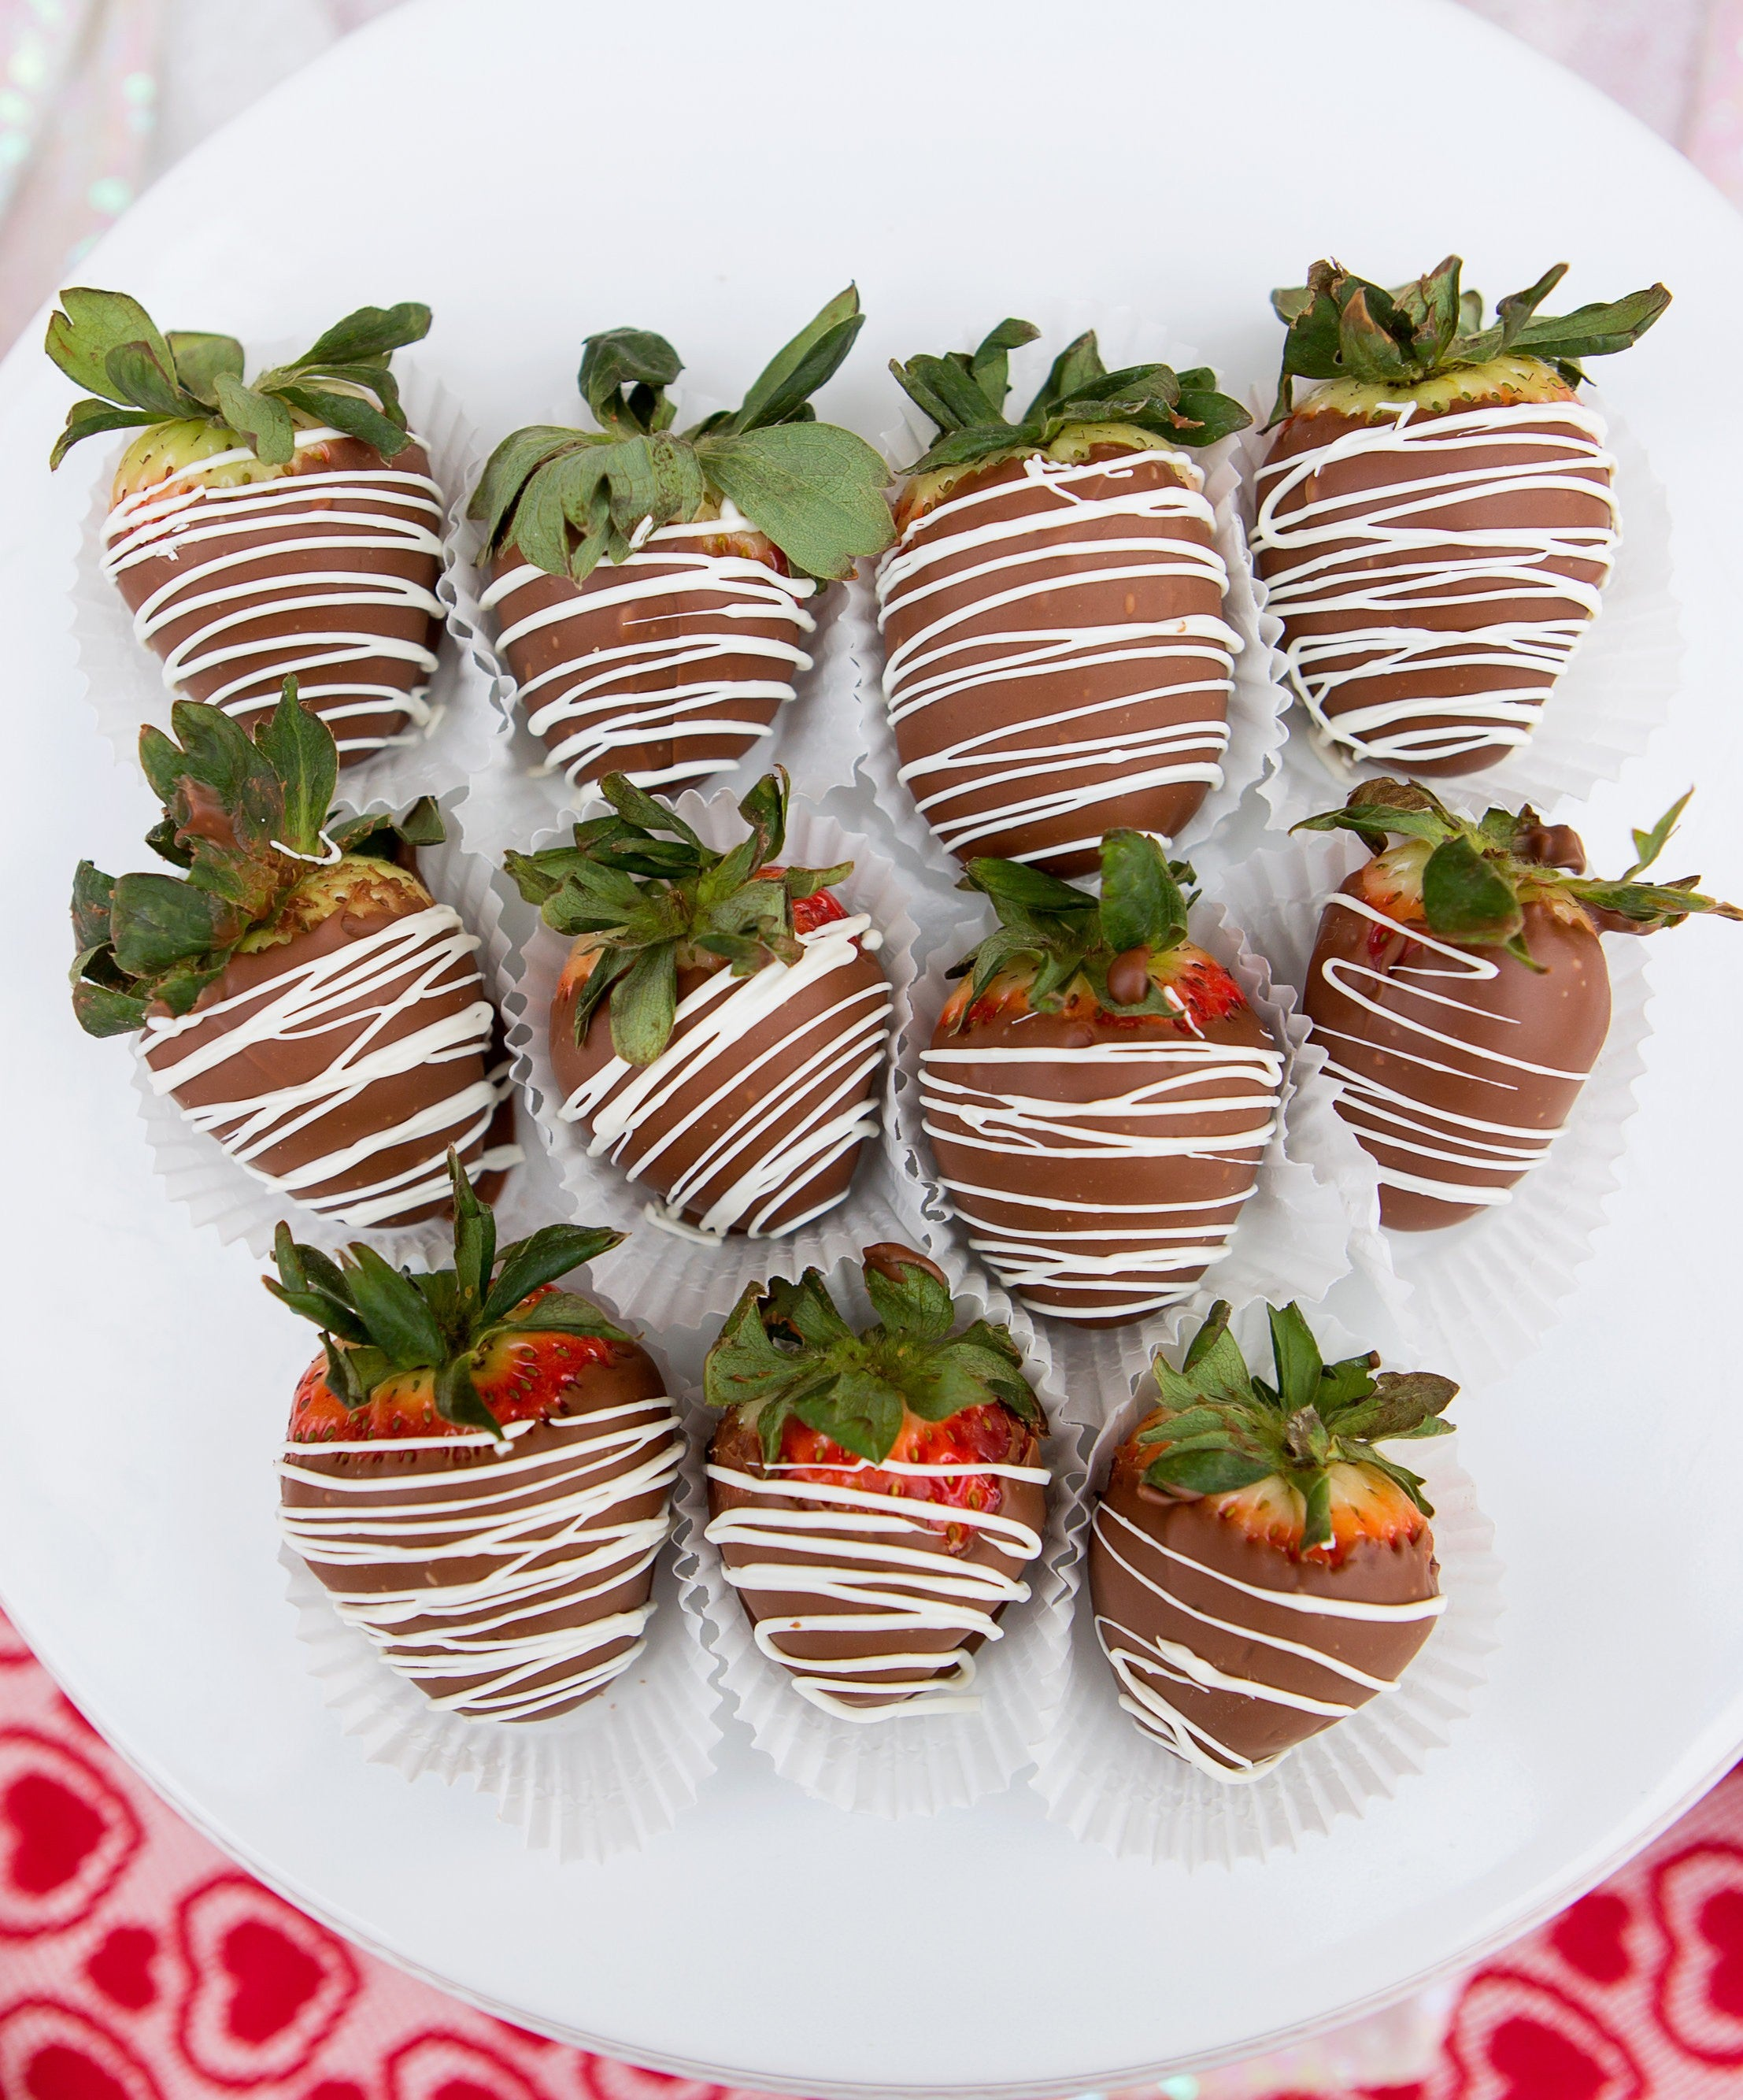 Chocolate Dipped Strawberries only available February 12th & 13th - FUTURE DATE PICKUP!